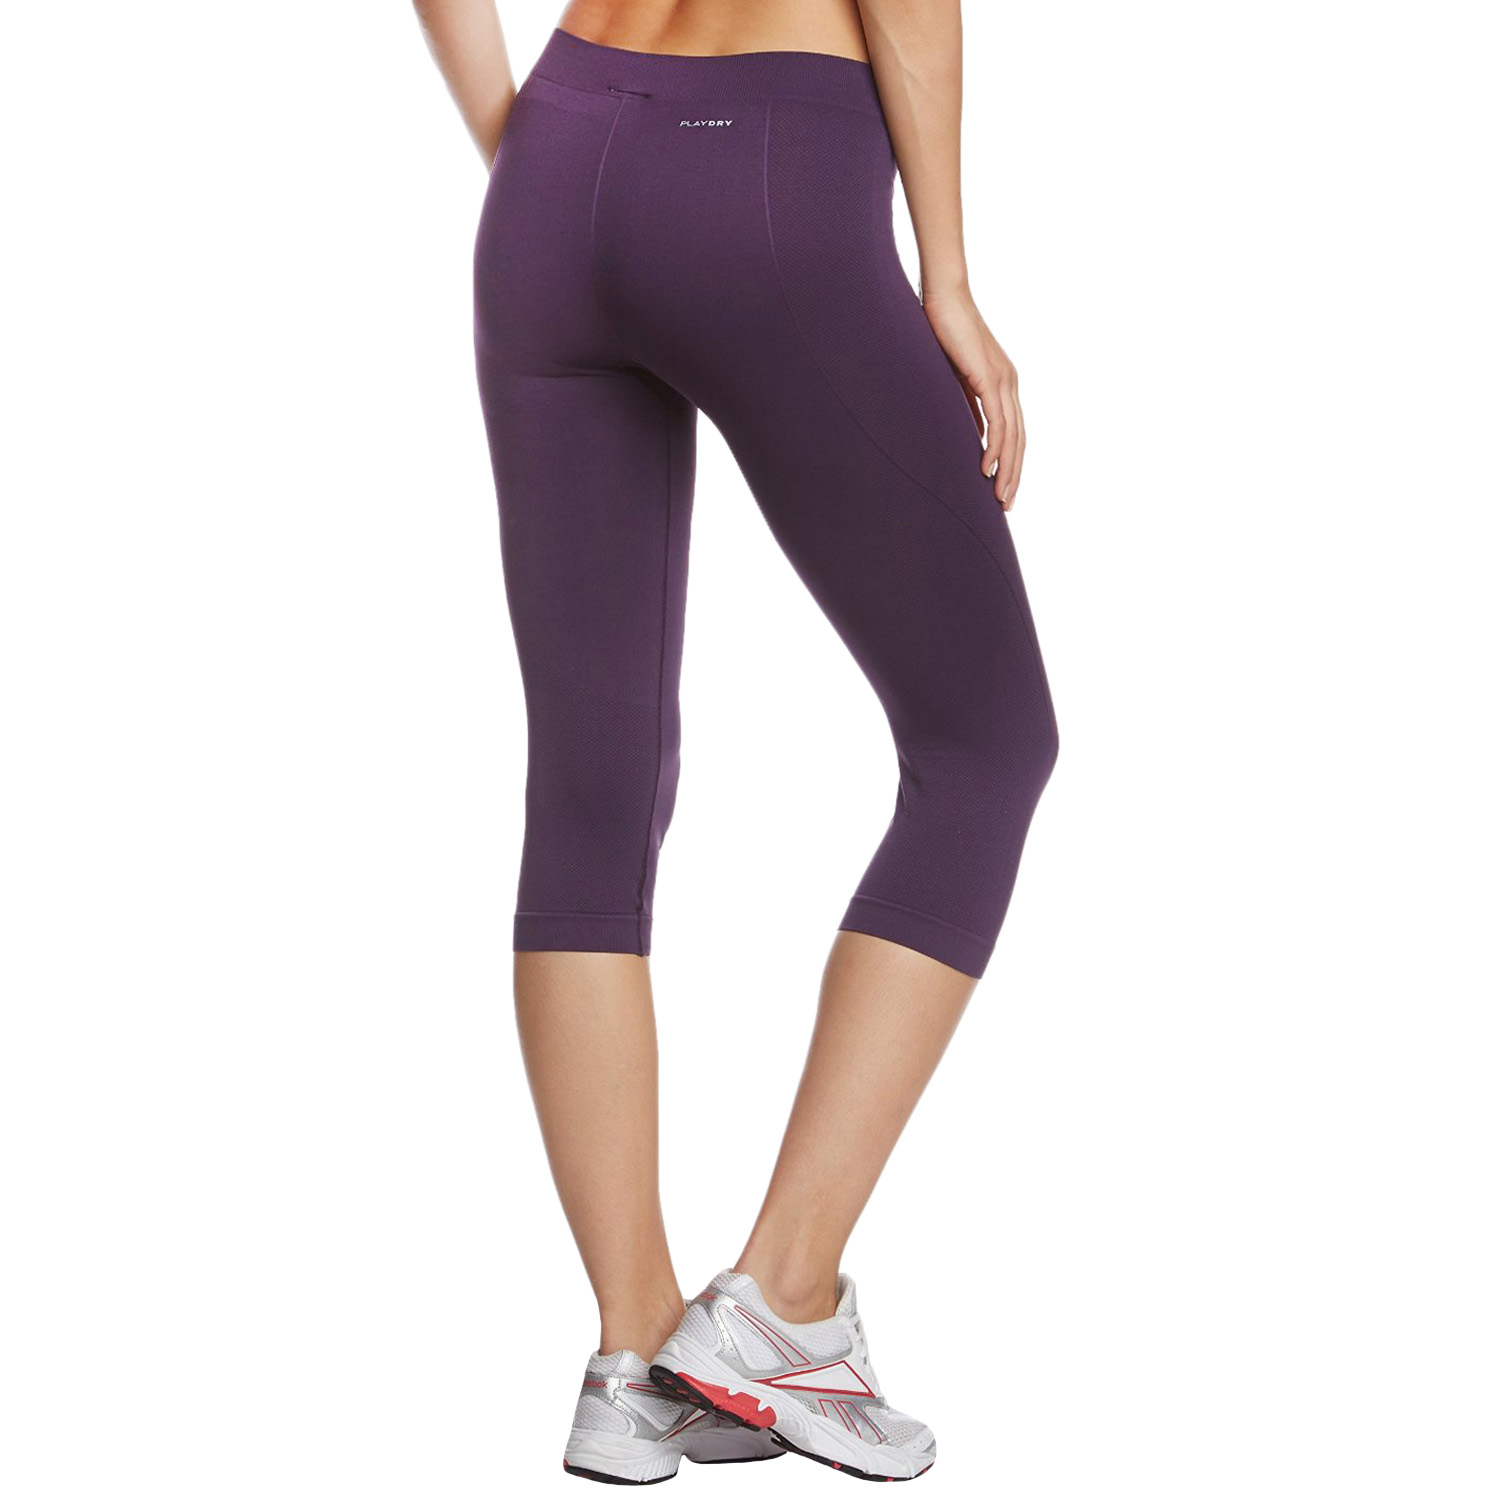 GymShark Women's Seamless Fitness Yoga Pants, Wholesale Flex Leggings, Running Tights for Women! Material 56% Nylon 34% Polyester 10% Spandex, Function Yarns Available: CoolMax, Supplex, Meyl Skinlife, Thermolite, Bamboo Charcoal, CoolDry, Tactel, Lycra, Merino Wool.